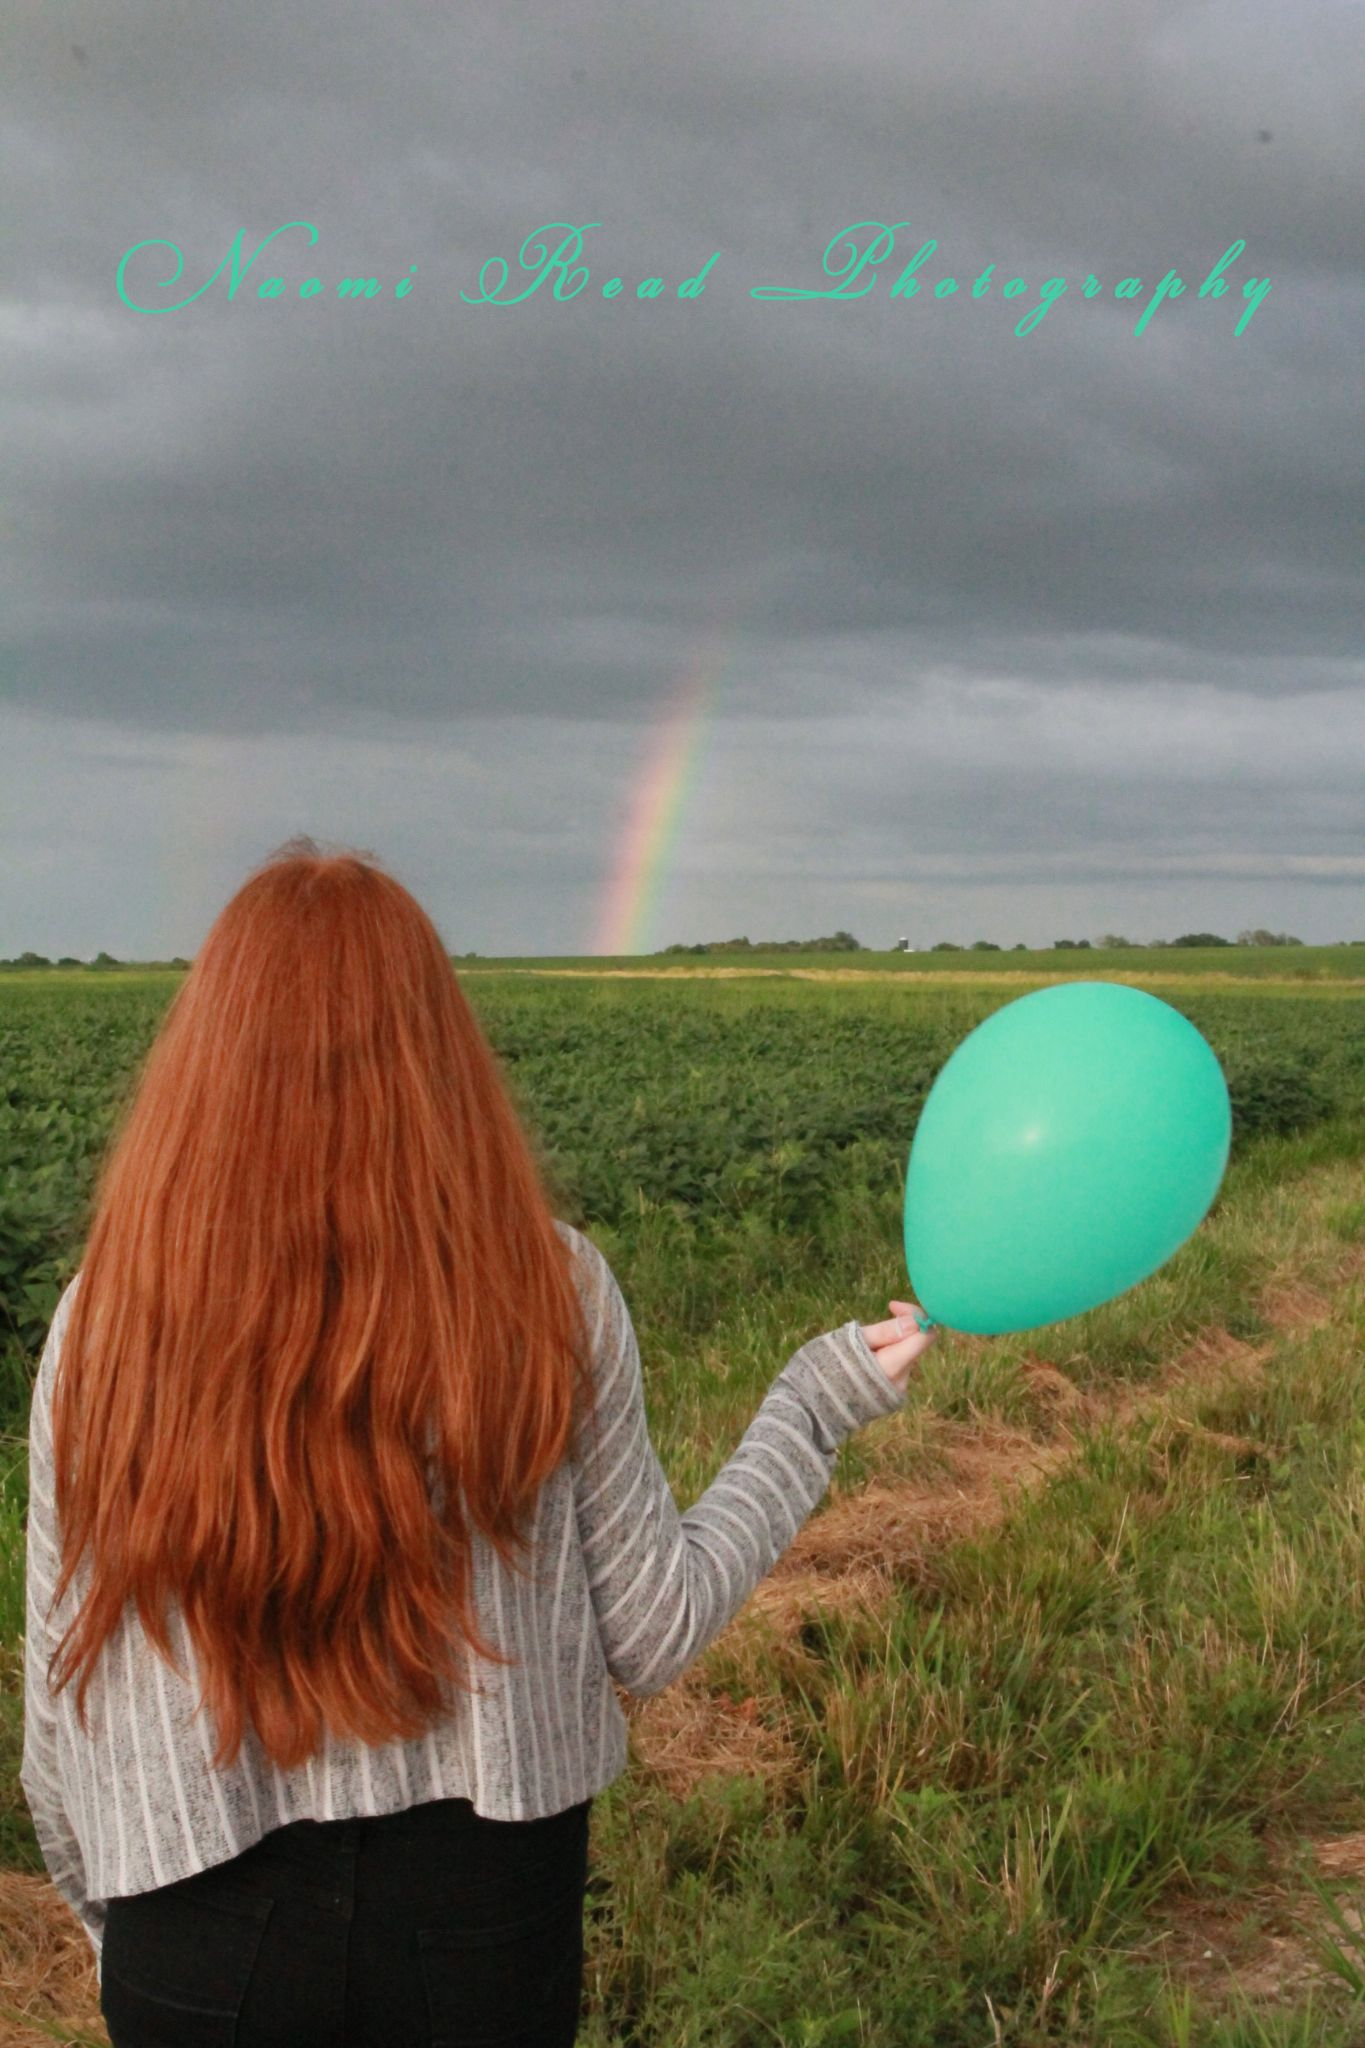 Somewhere over the rainbow by NaomiRead